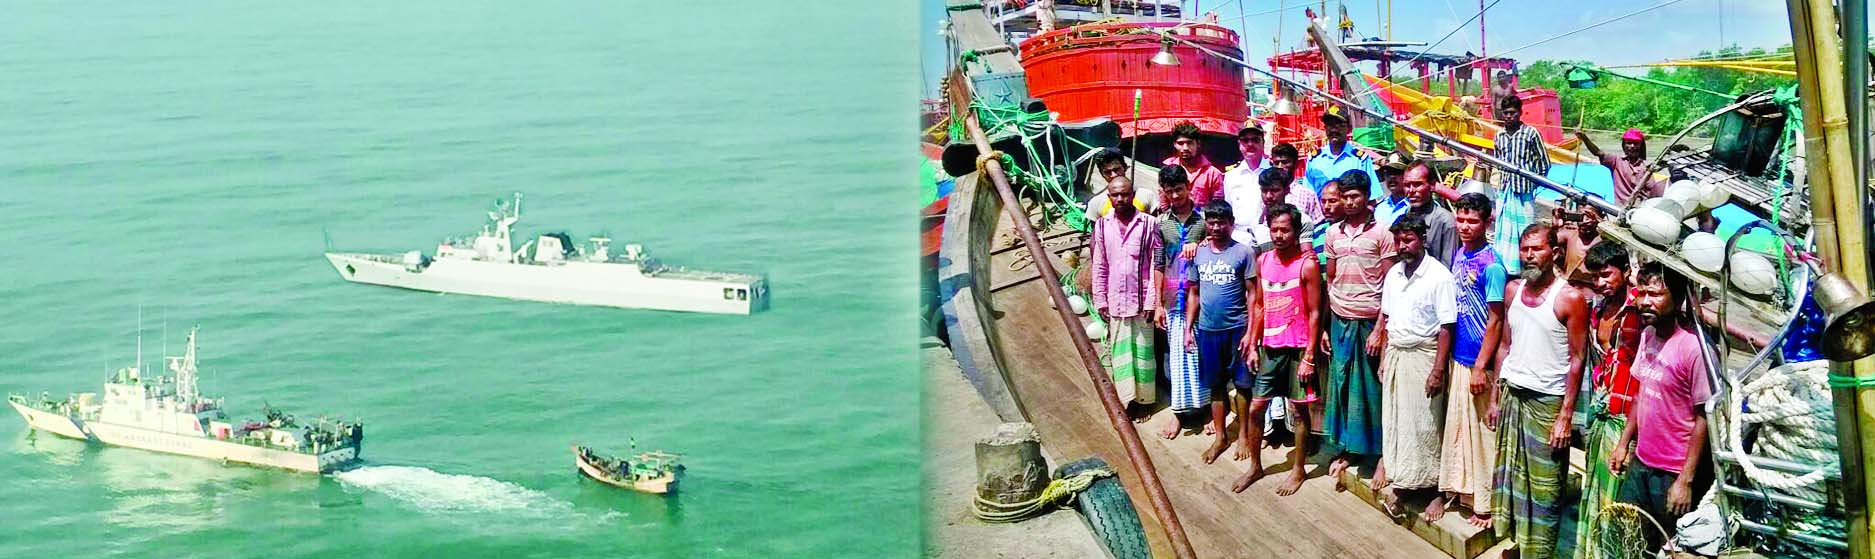 Sixty-two missing Bangladeshi fishermen, rescued by Indian Coast Guard from the Bay of Bengal, were returned to country along with two fishing trawlers by Bangladesh Naval Ship Prattaya and Kopotakkho.